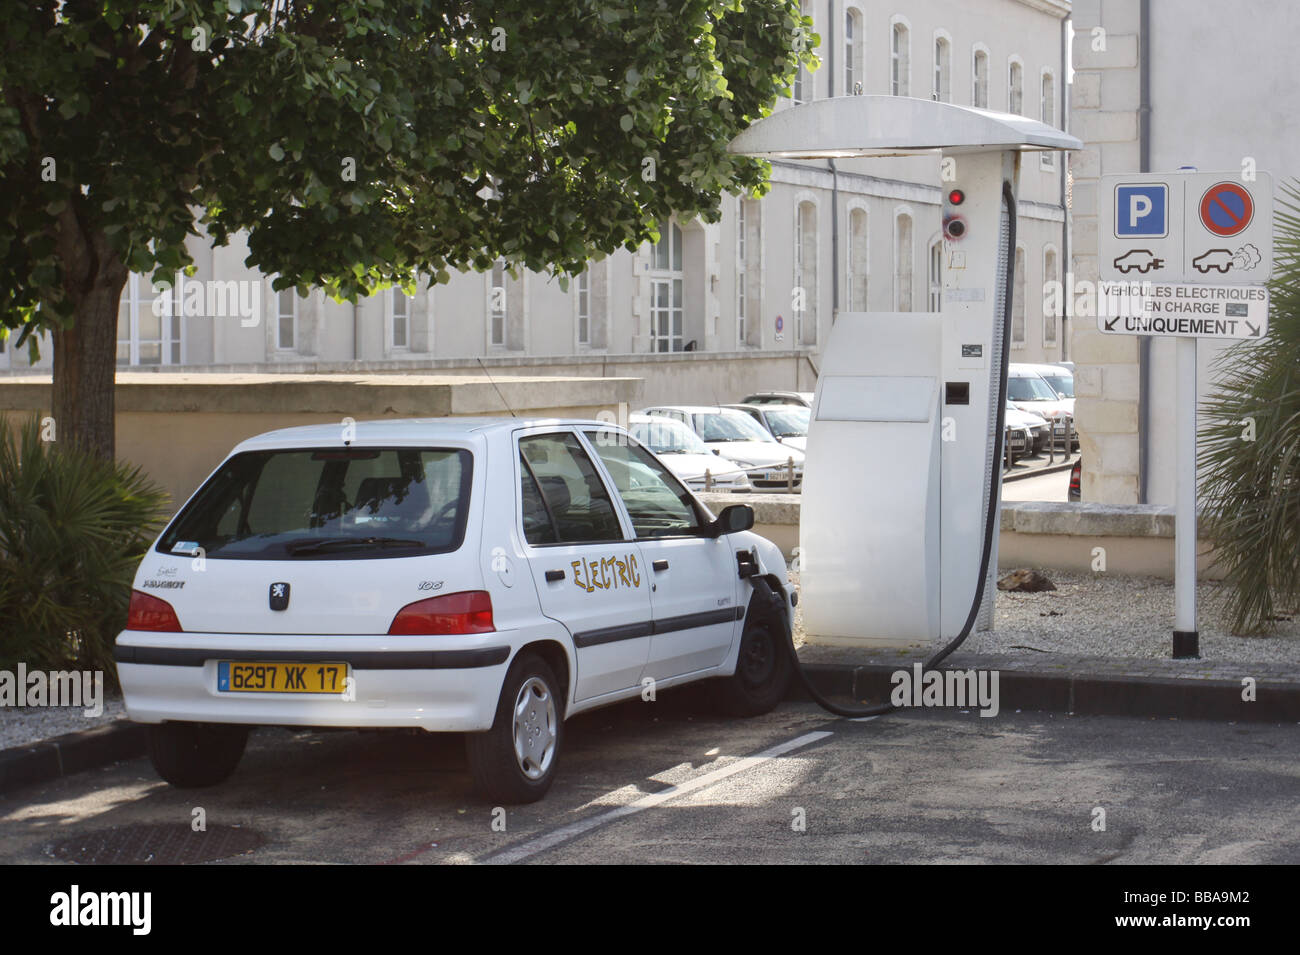 Peugeot 106 stock photos peugeot 106 stock images alamy for Garage peugeot la rochelle